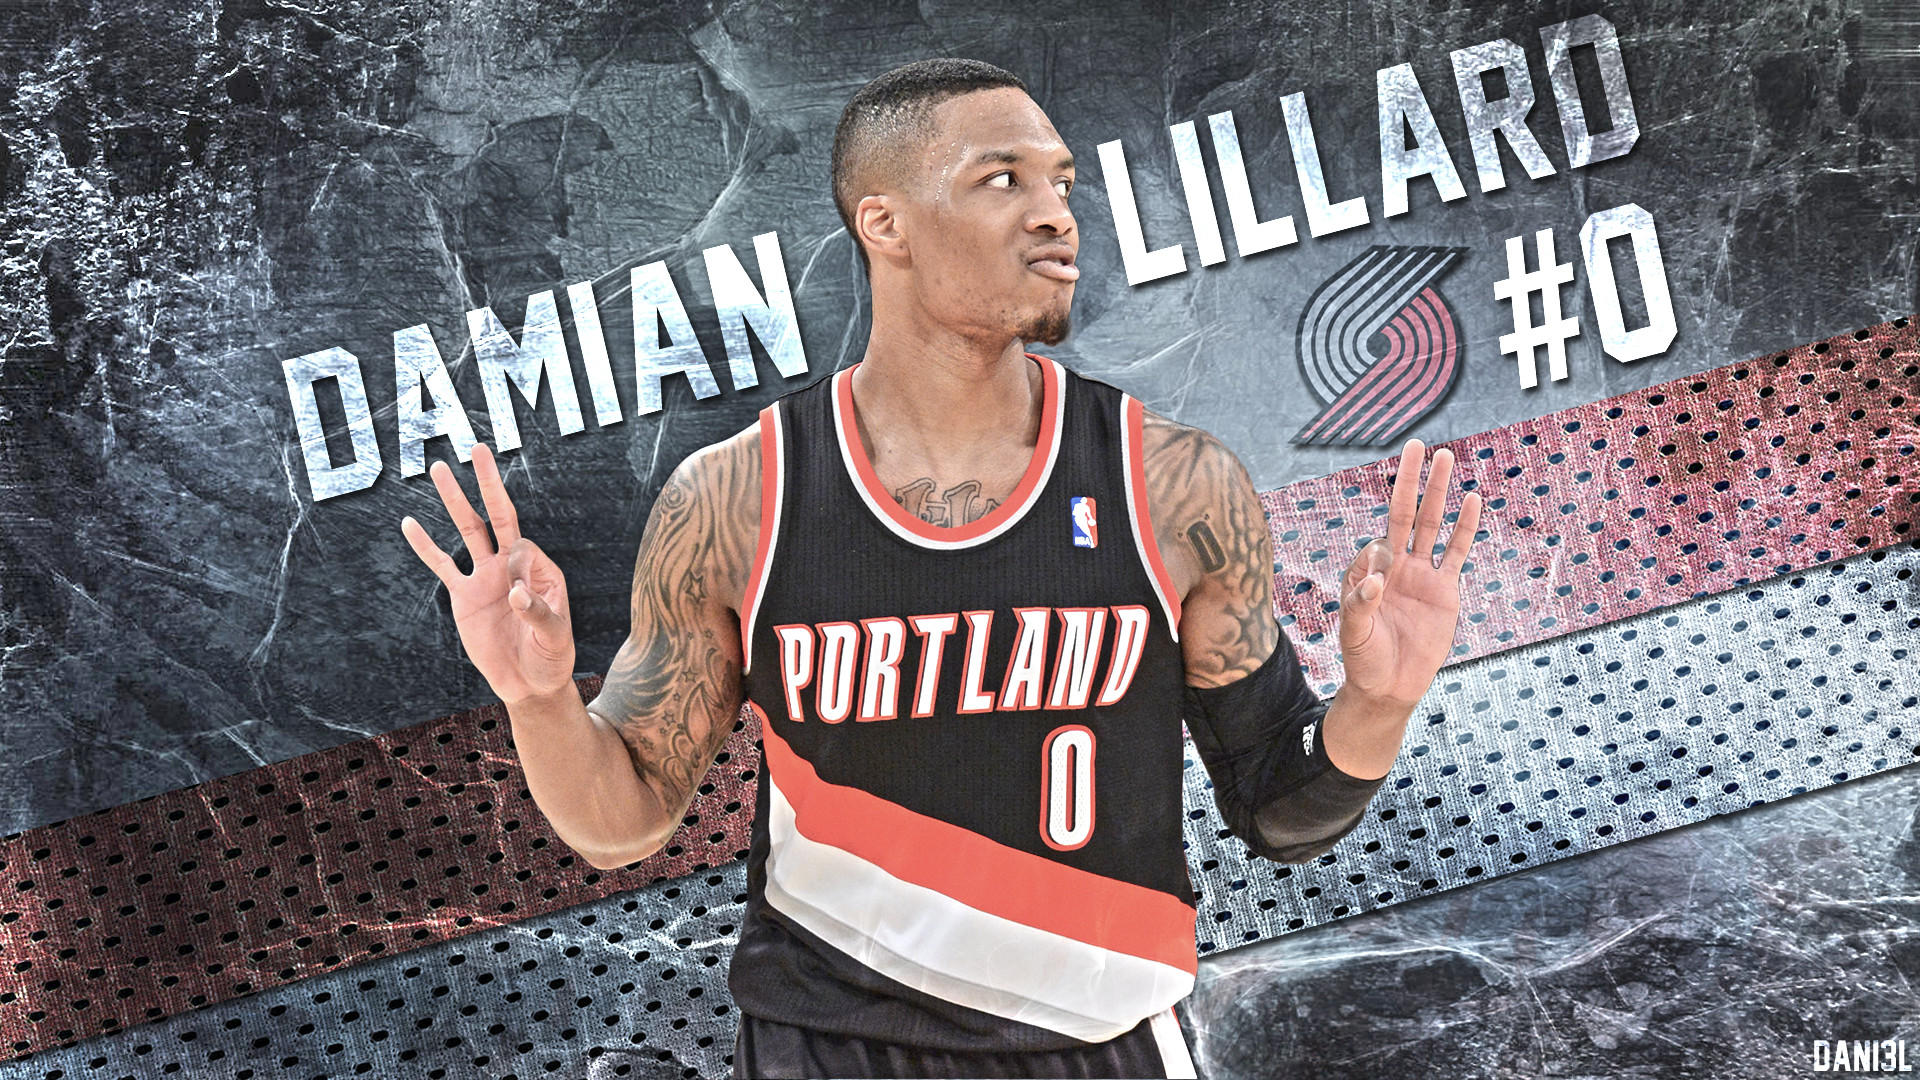 1920x1080 NBA, Portland, Trail Blazers, Portland Trail Blazers, Damian Lillard,  Basketball Wallpapers HD / Desktop and Mobile Backgrounds